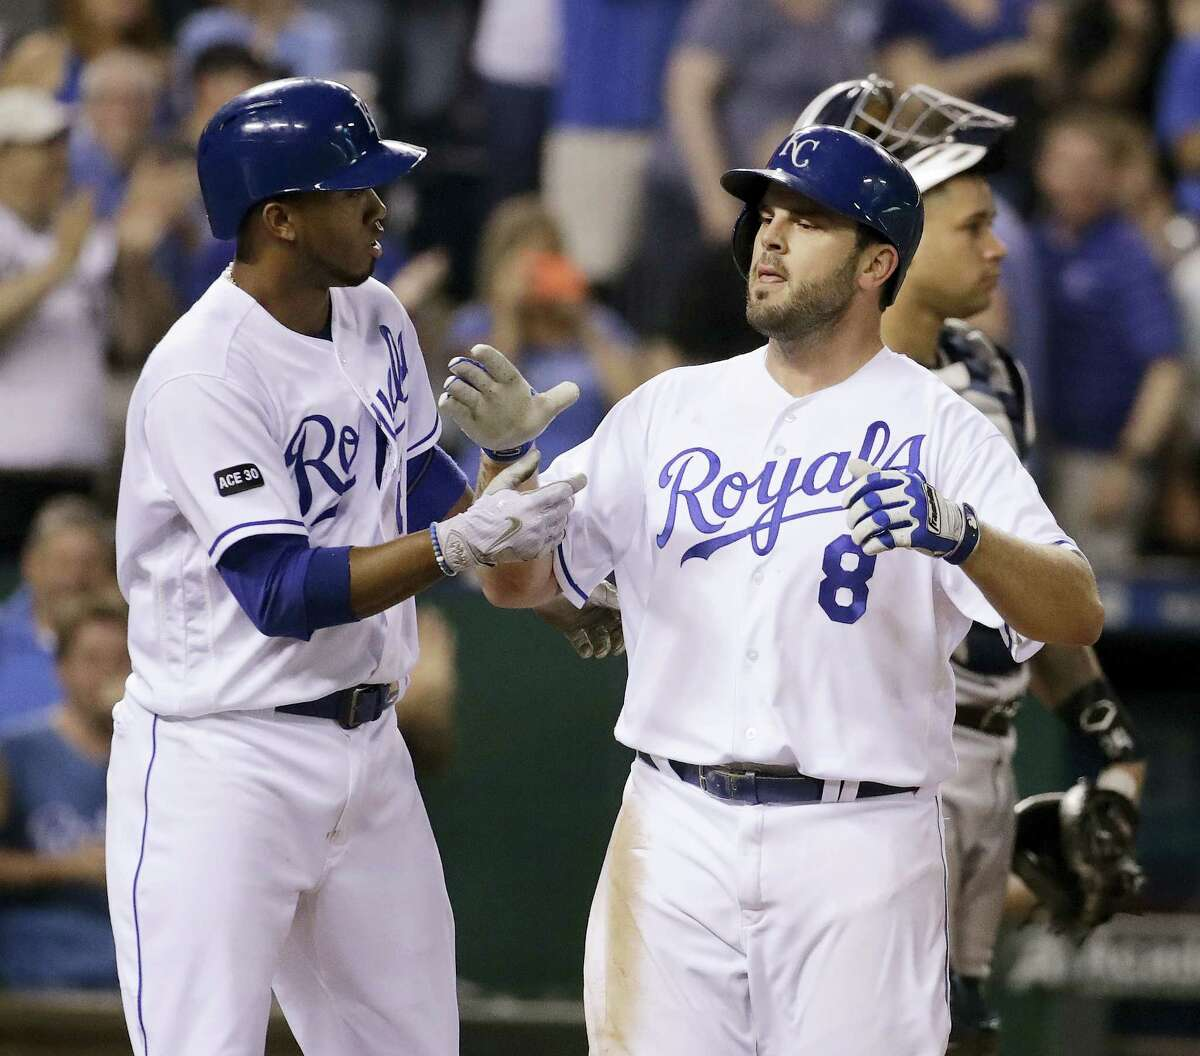 The Royals' Mike Moustakas (8) celebrates with Alcides Escobar after hitting a three-run home run in the fifth inning Thursday.